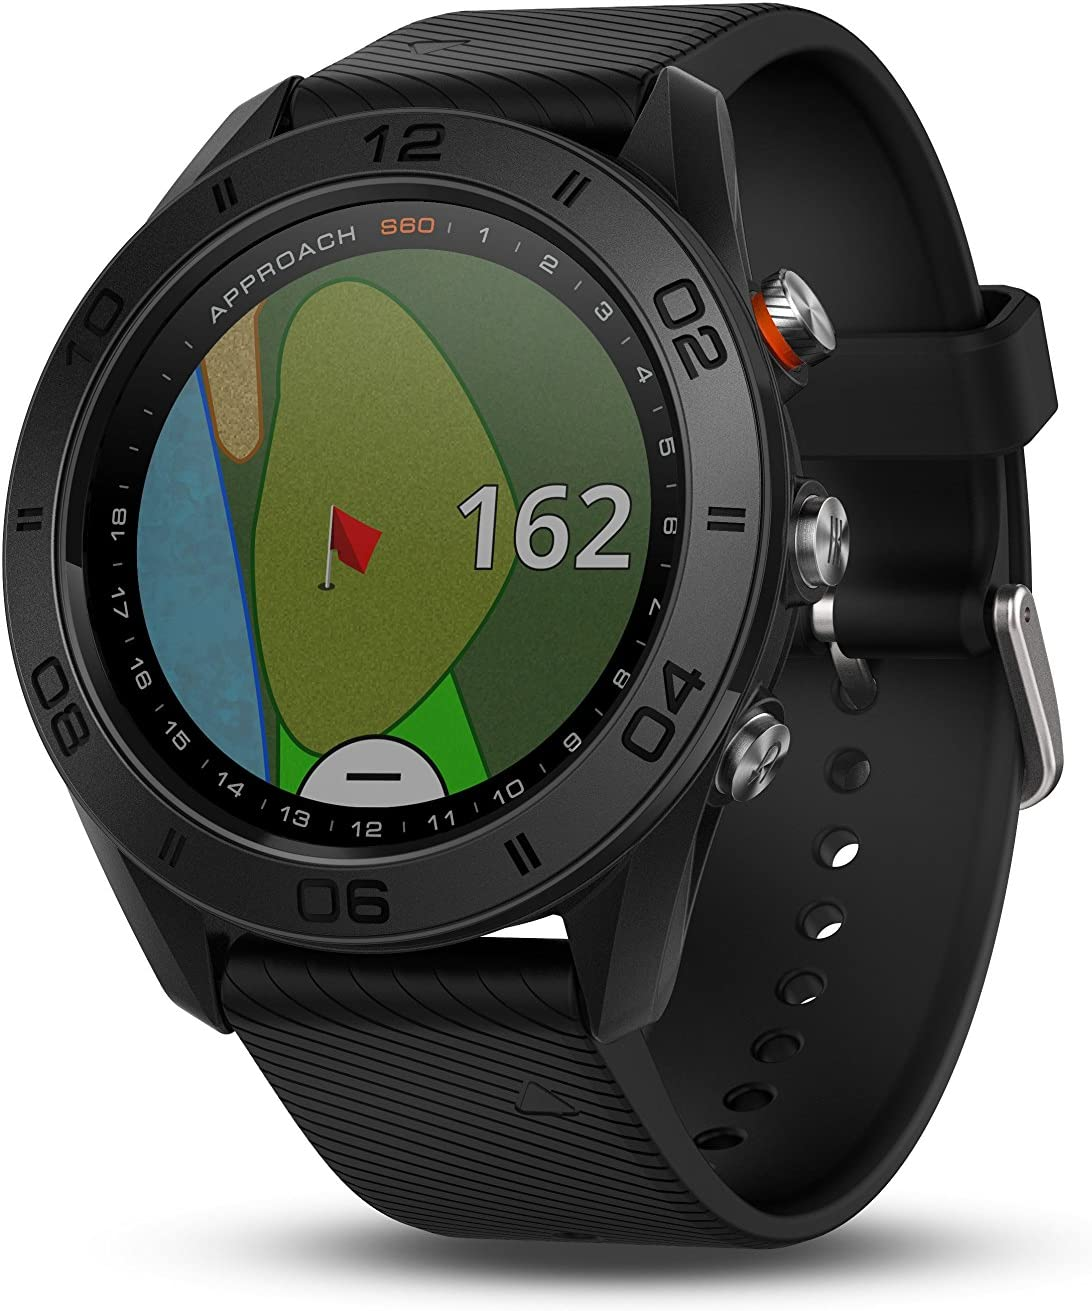 Garmin Approach S60, Premium GPS Golf Watch with Touchscreen Display and Full Color CourseView Mapping, Black w/ Silicone Band